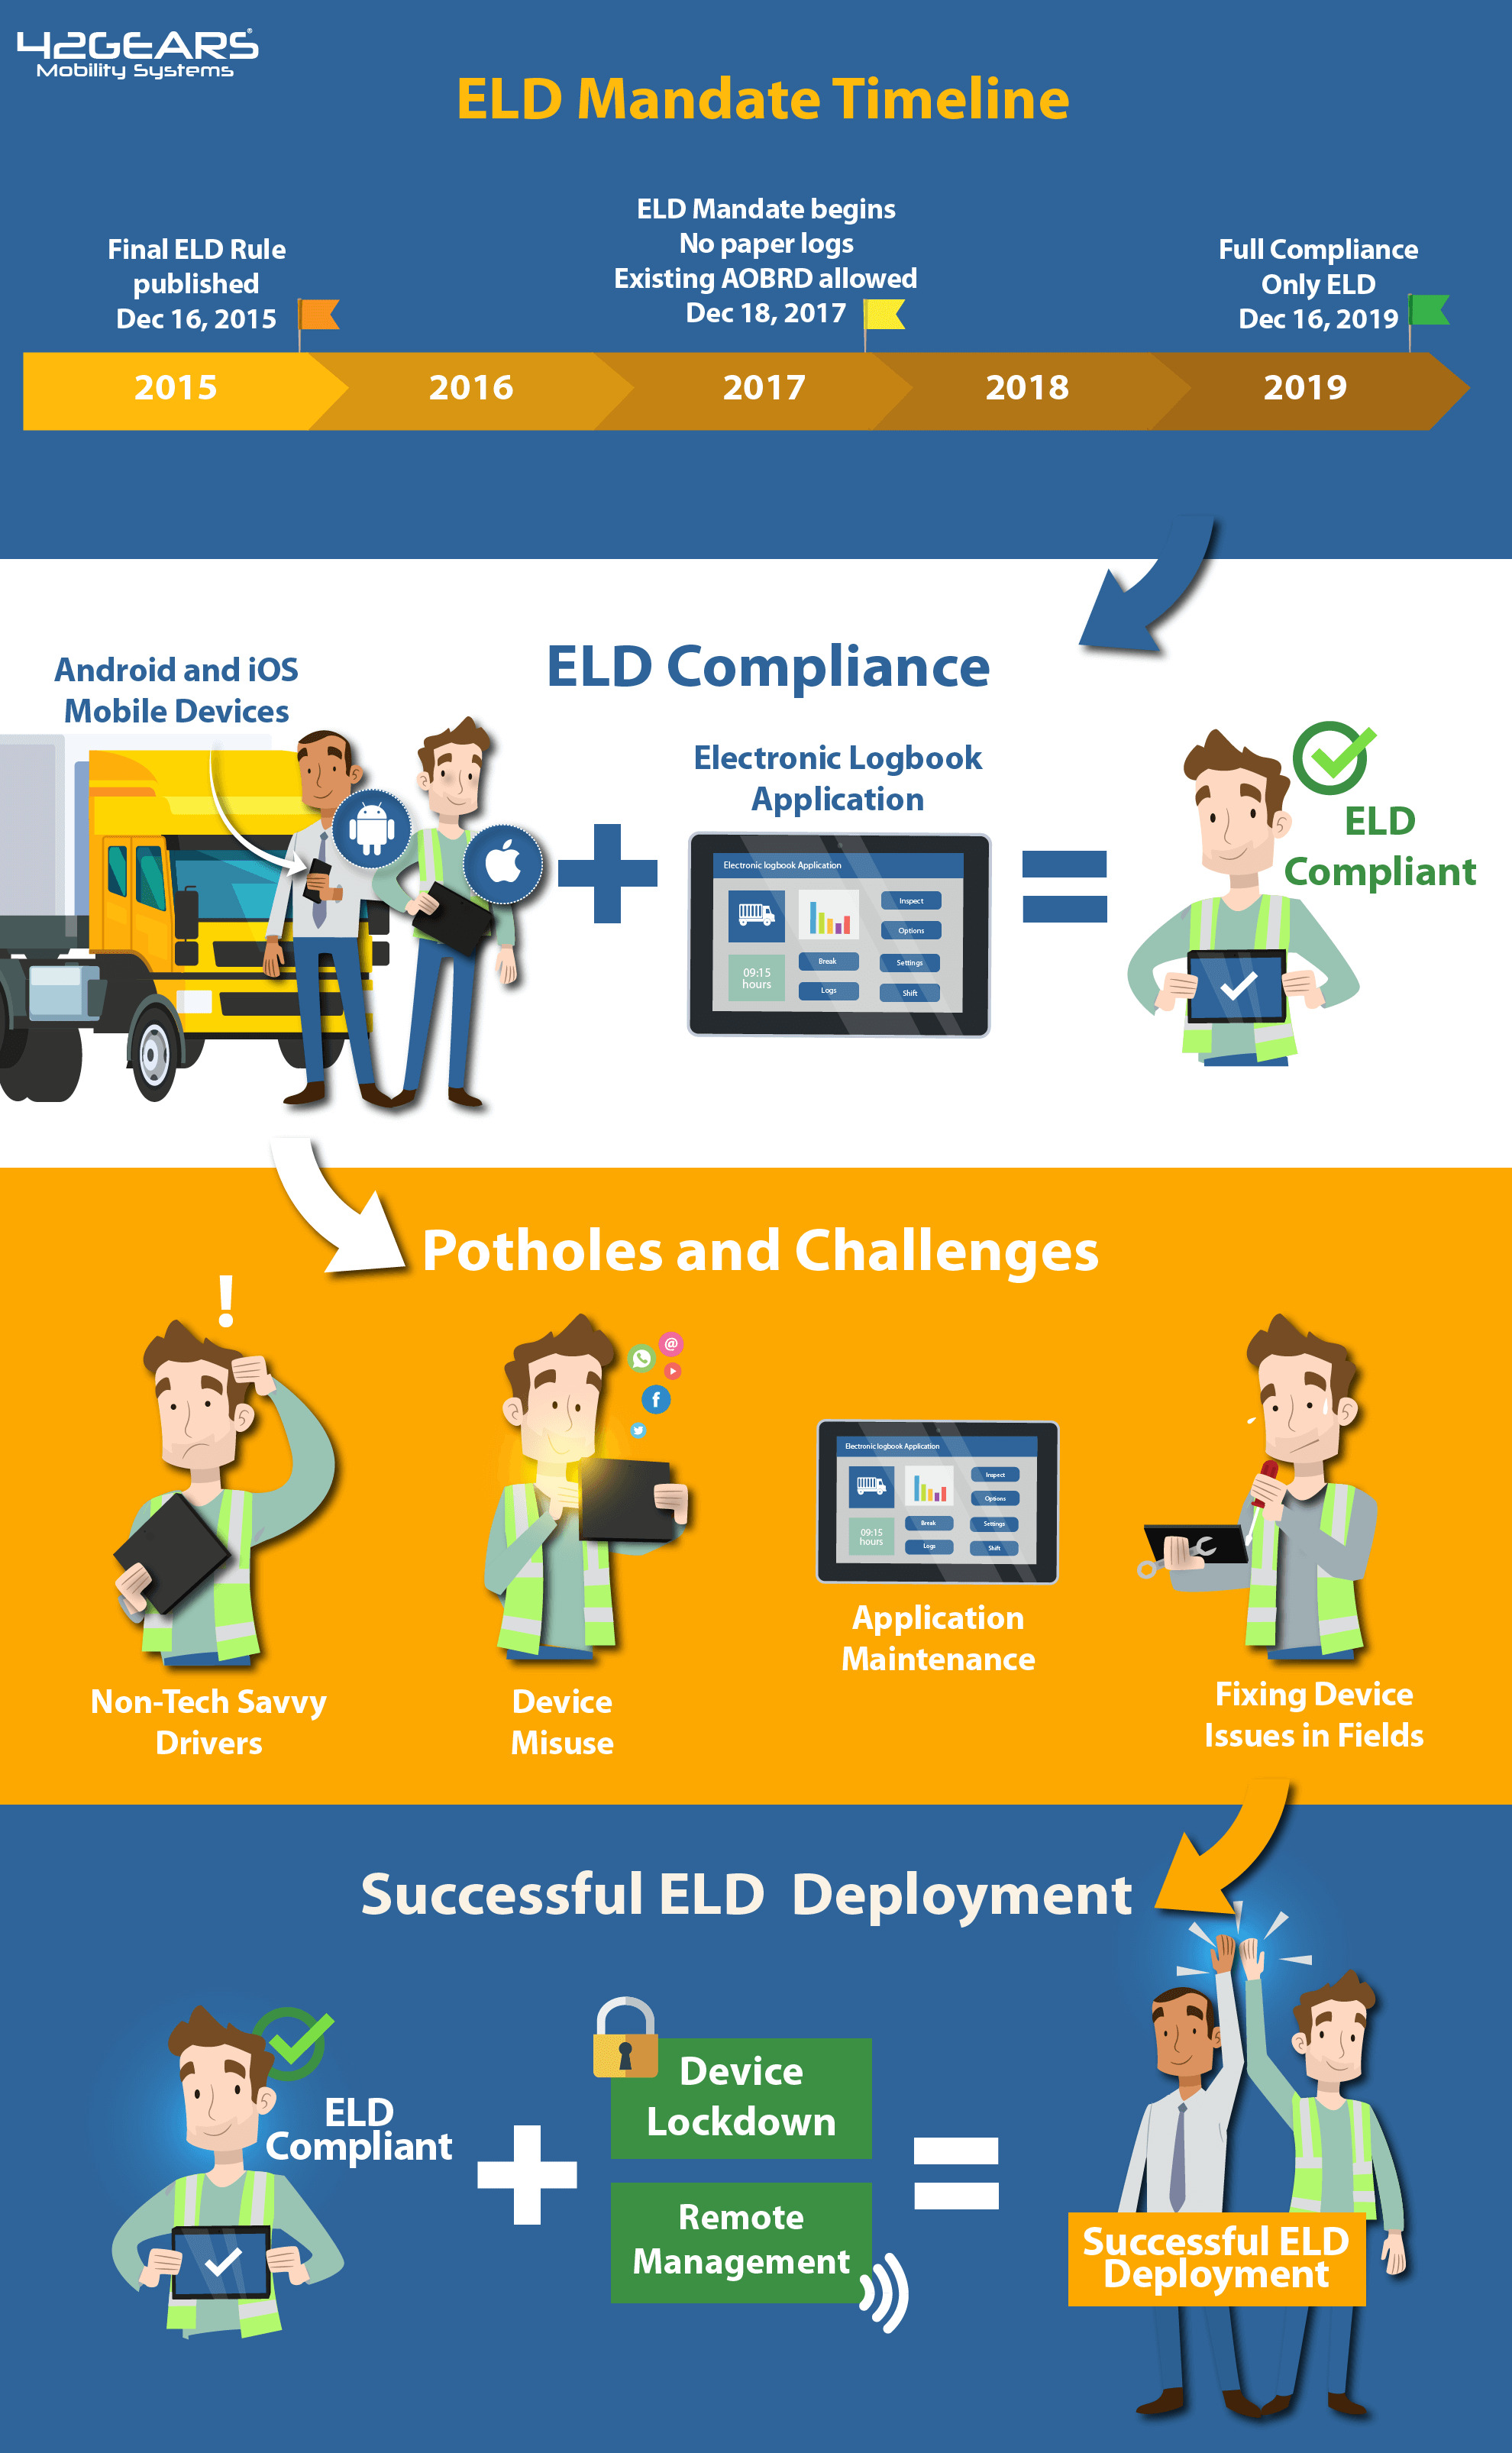 Successful ELD Compliance with Unified Endpoint Management (UEM) Solution